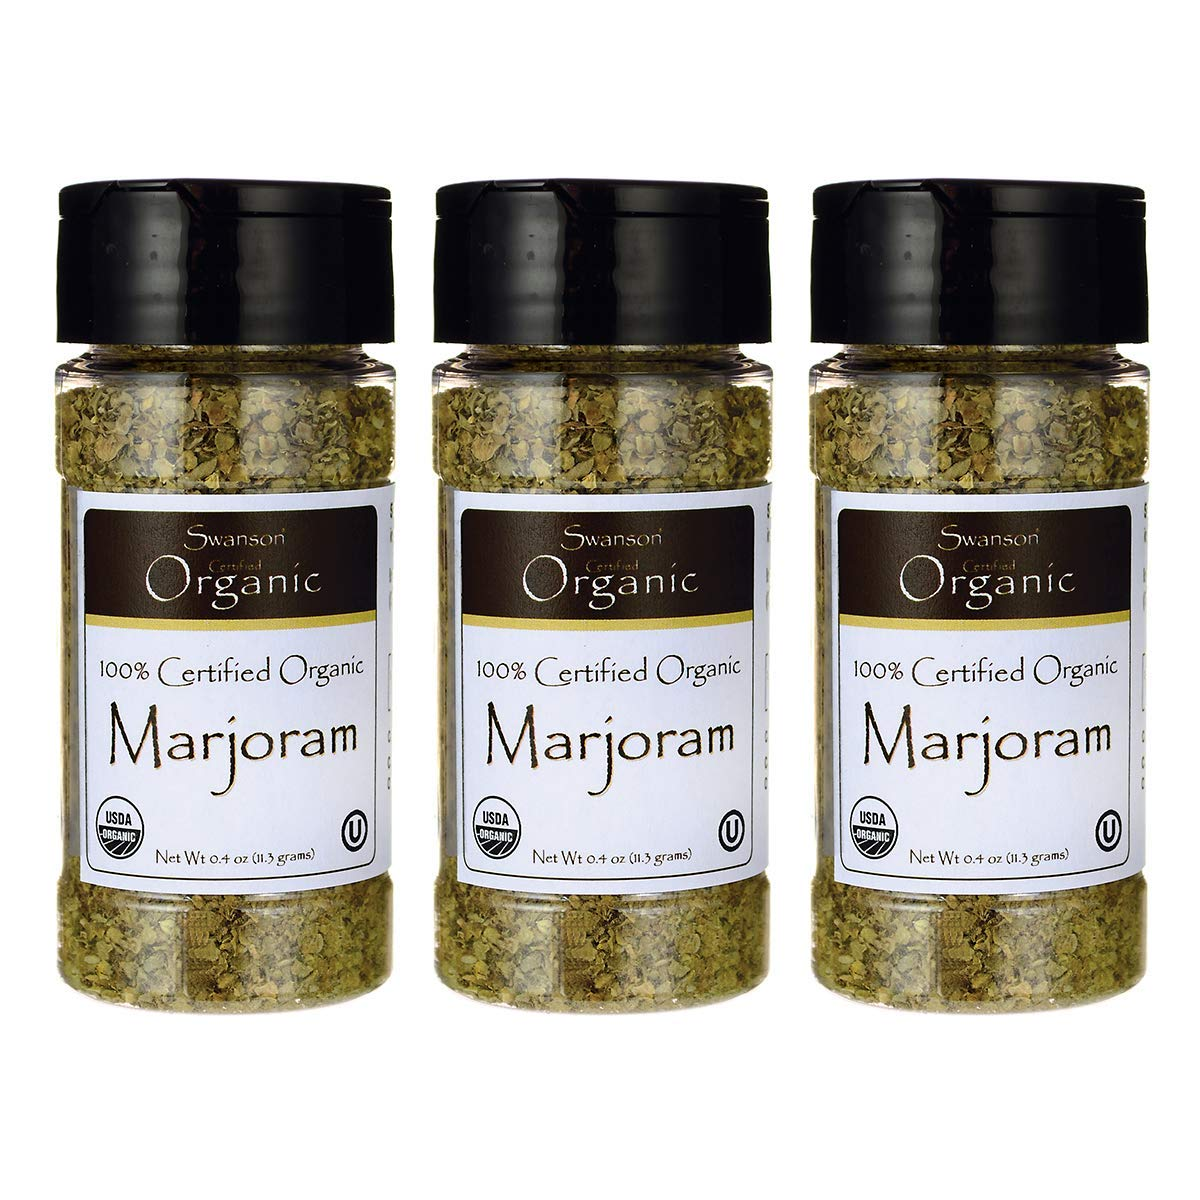 Swanson 100% Certified Organic Marjoram 0.4 Ounce (11.3 g) Flakes (3 Pack)